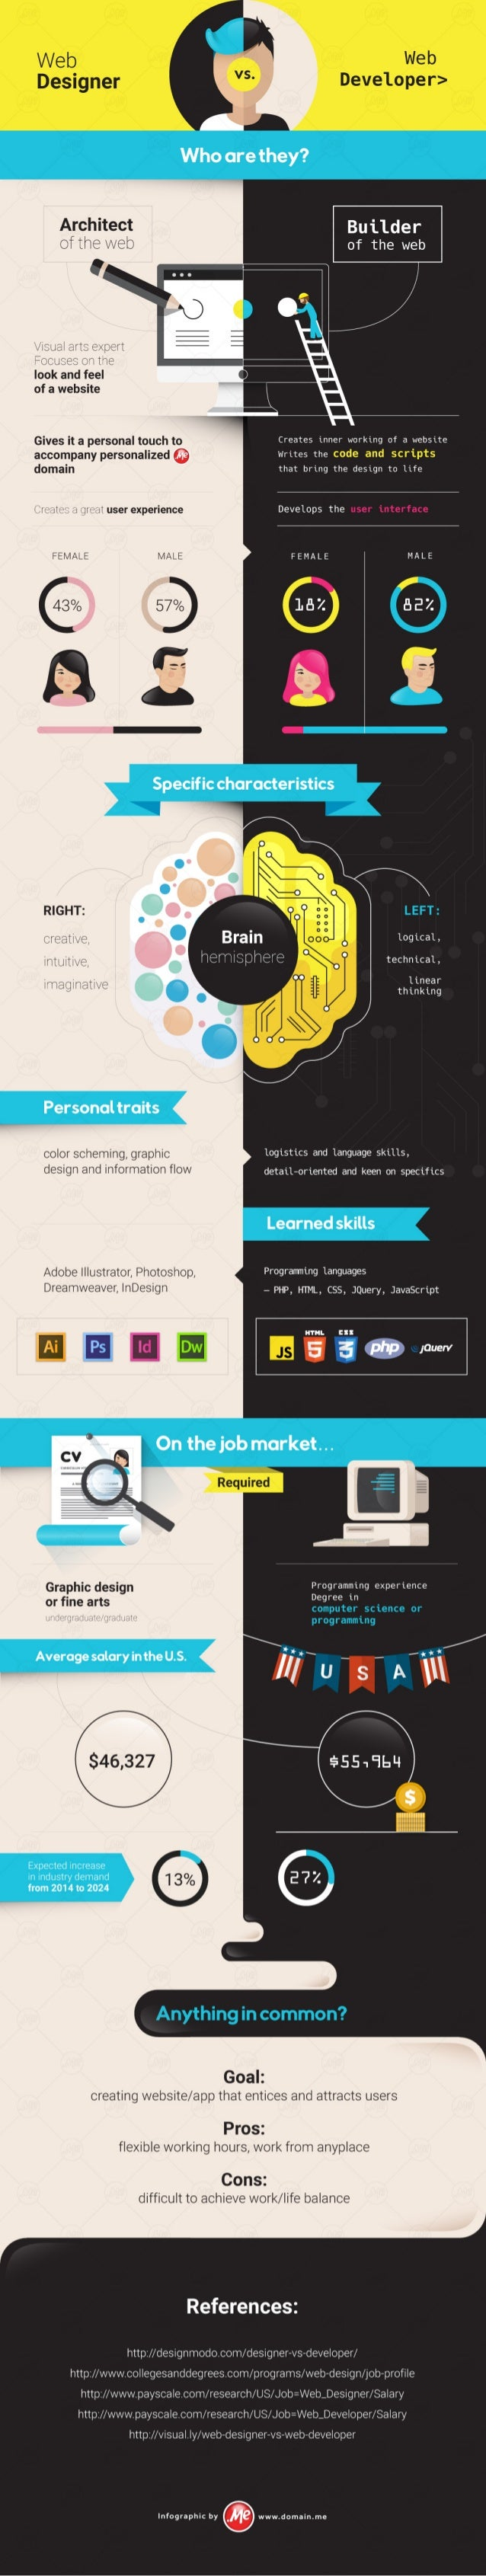 Infographic: Web Designer vs. Web Developer